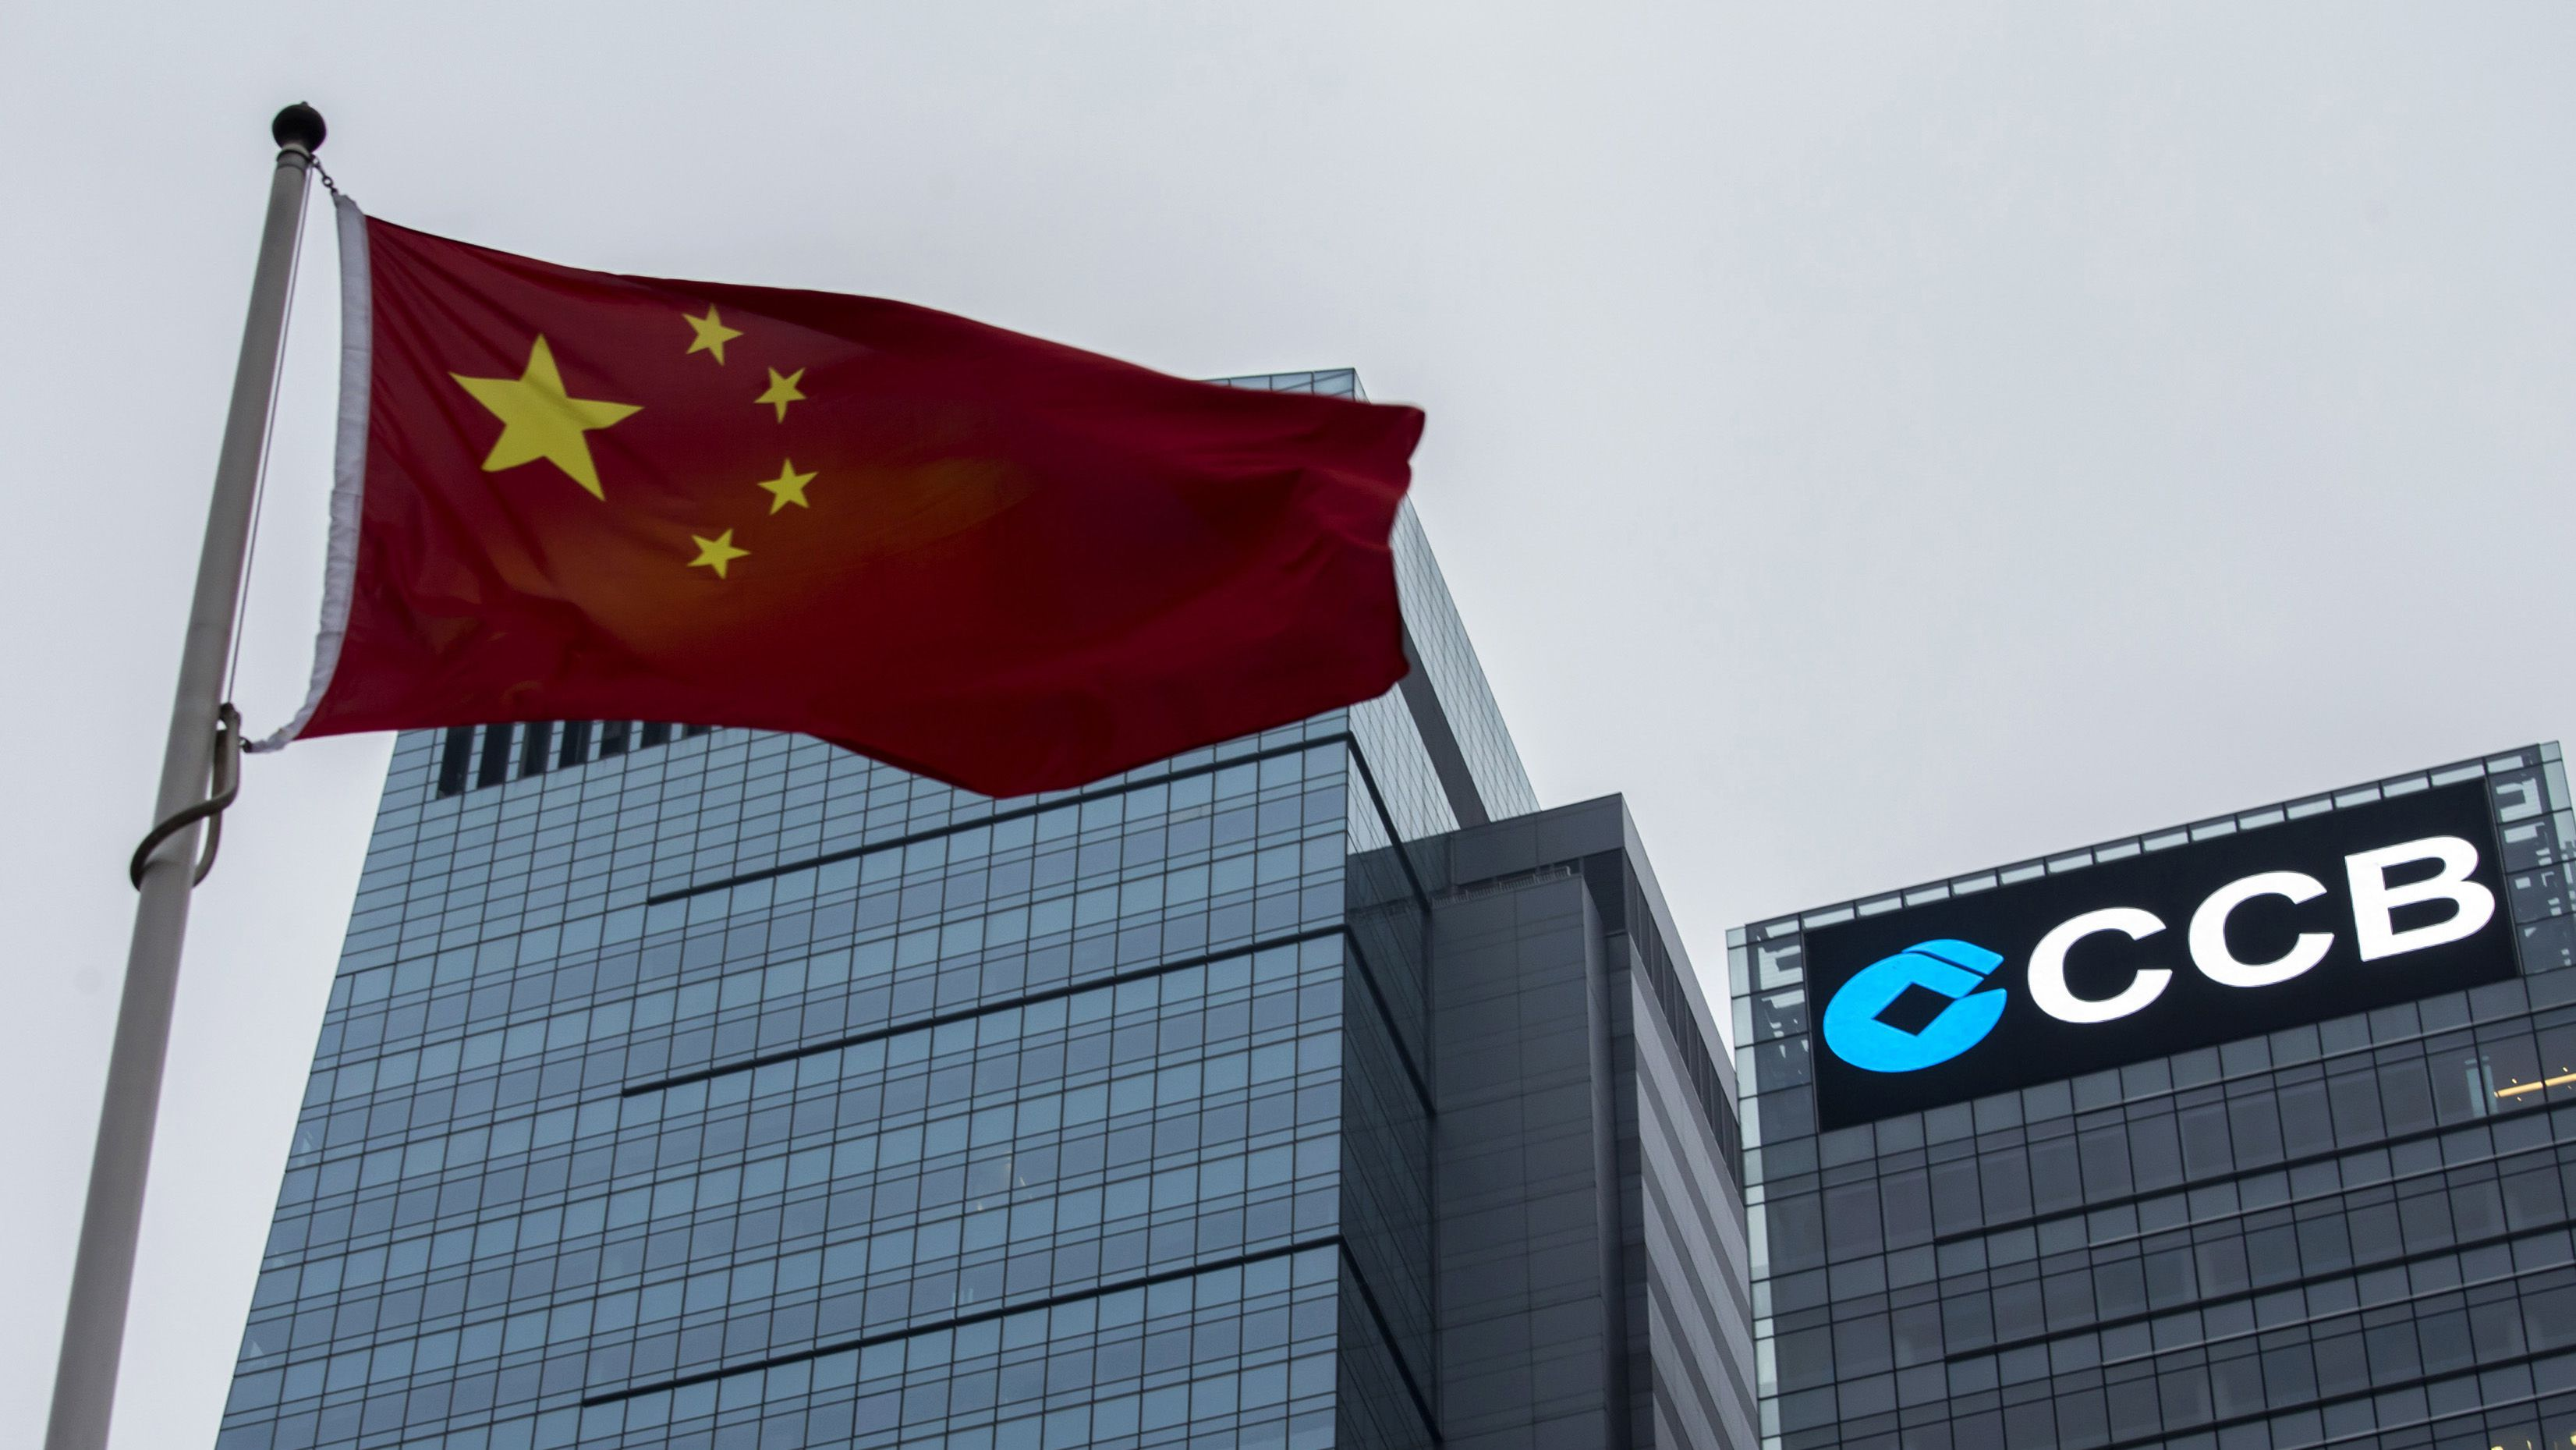 DATE IMPORTED:December 29, 2014A Chinese national flag flies in front of the China Construction Bank (CCB) Tower at Hong Kong's business Central district December 26, 2014. REUTERS/Tyrone Siu